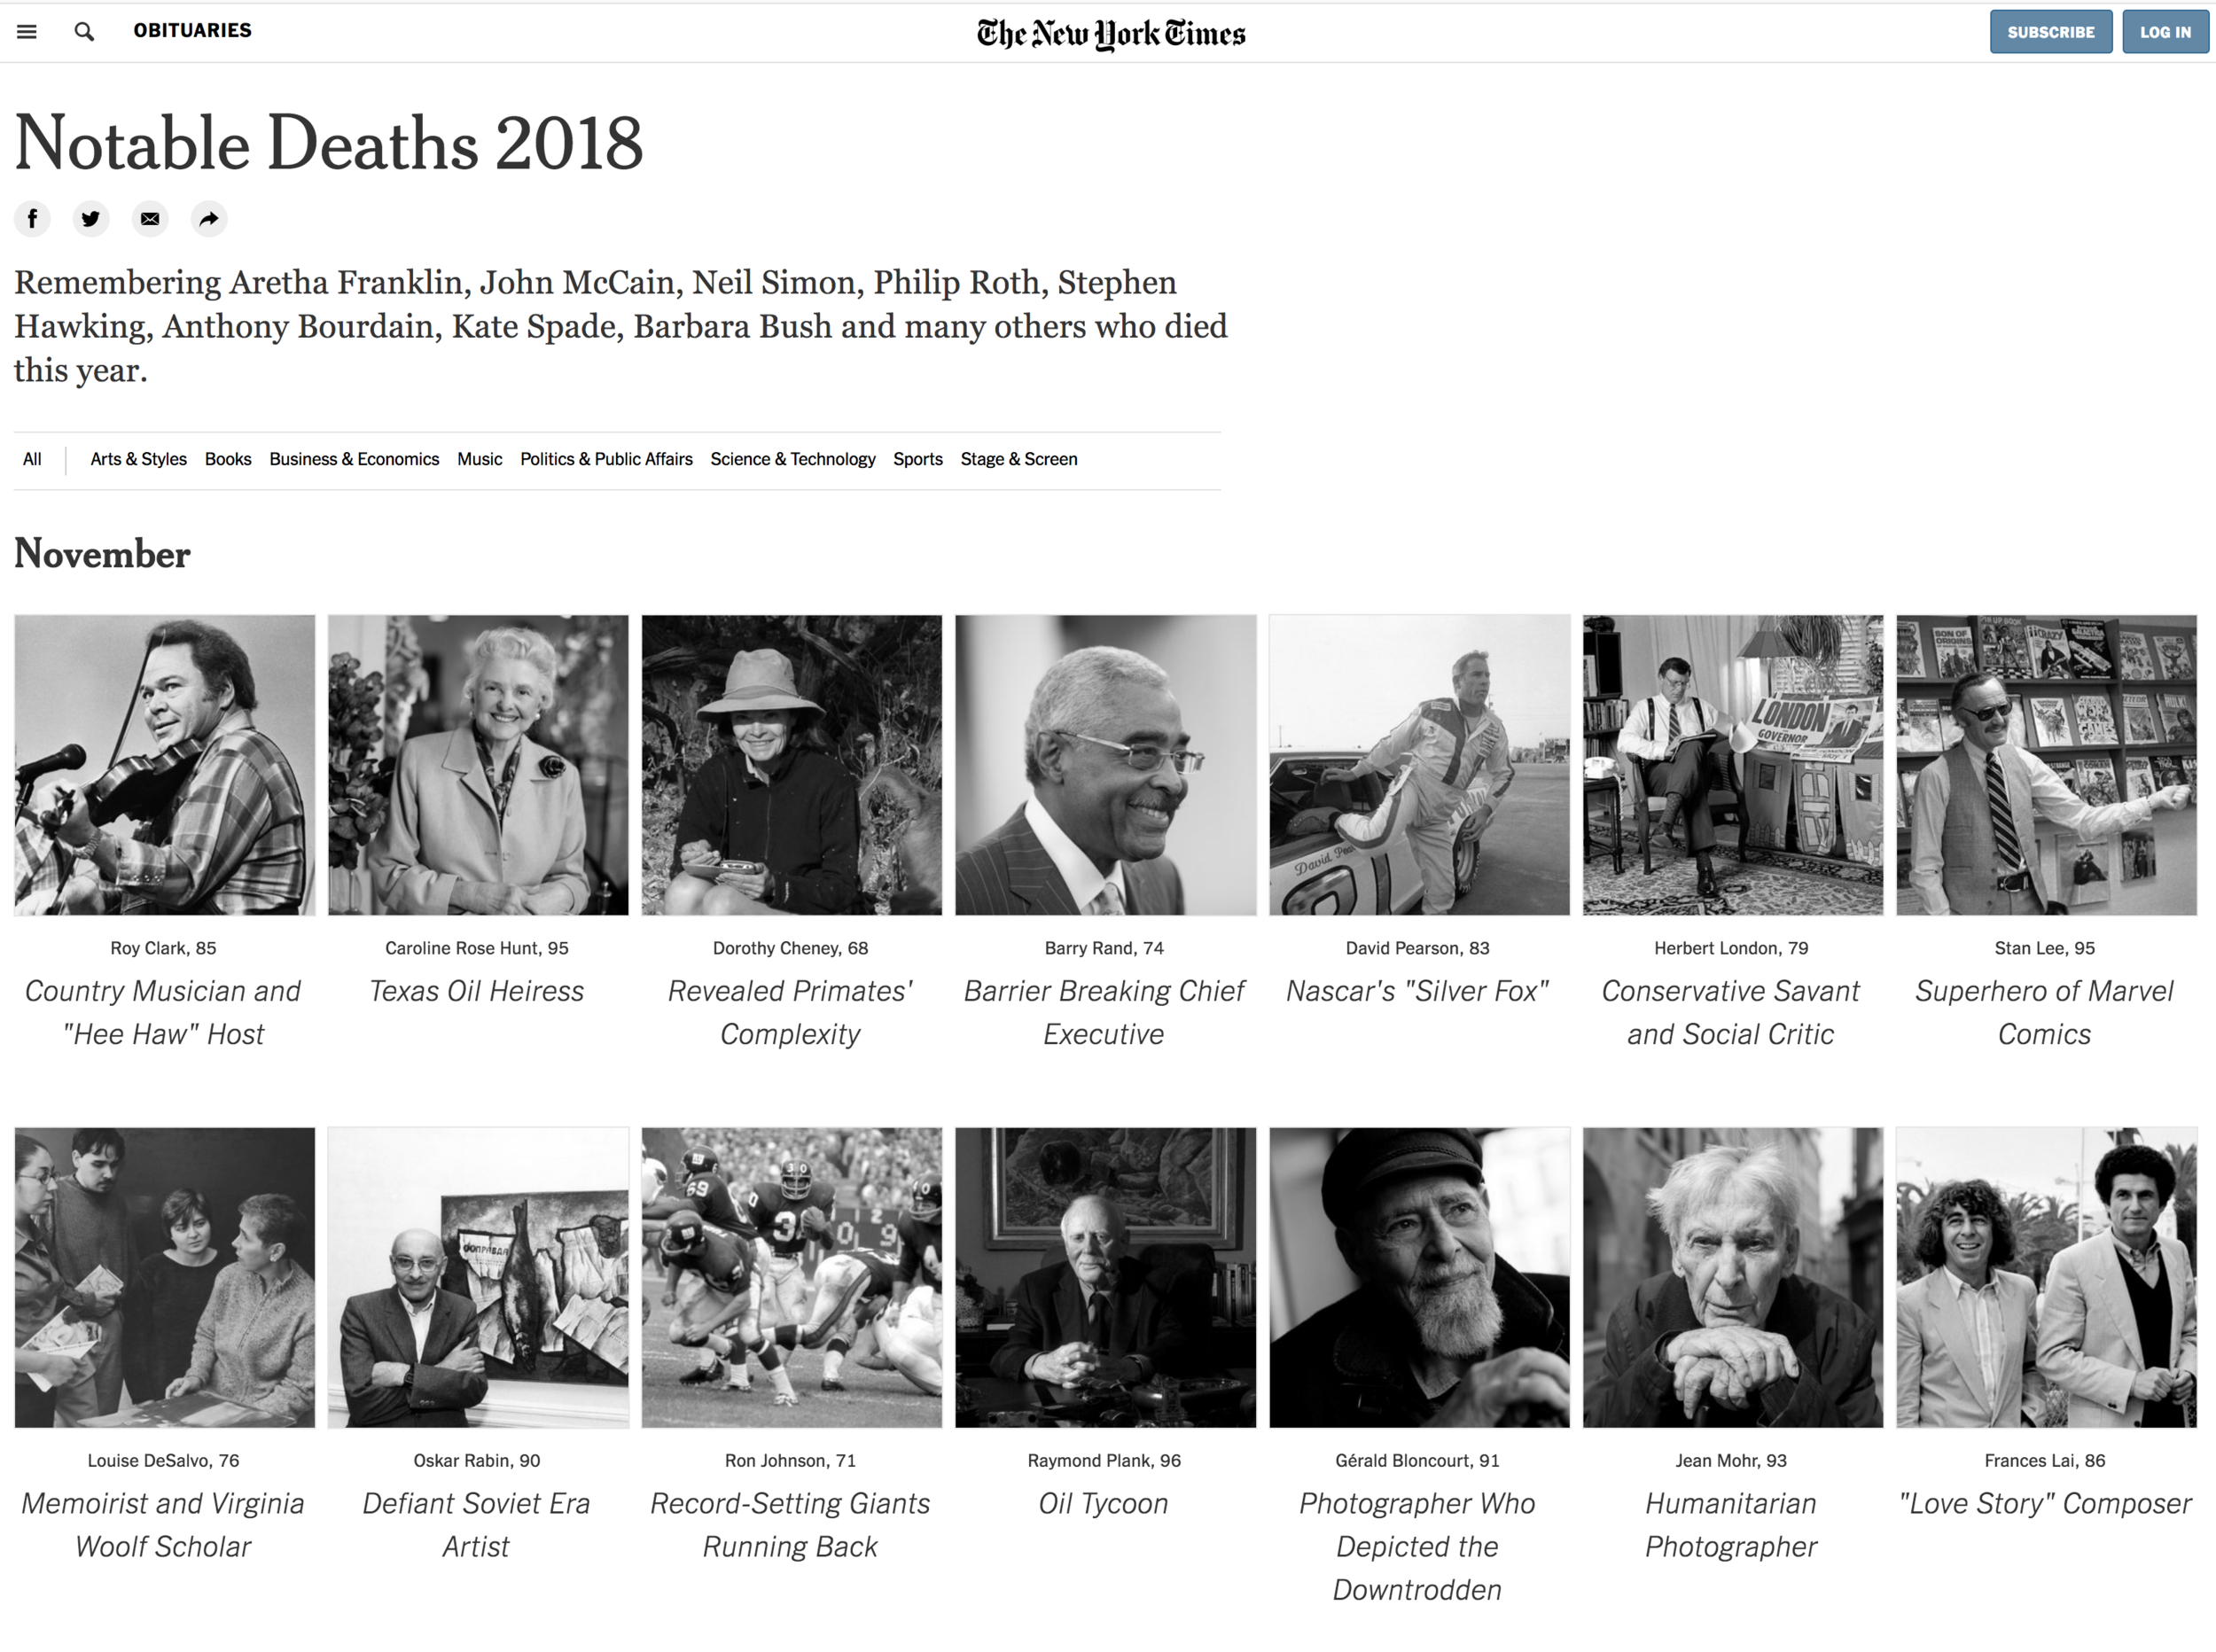 An interactive section in The New York Times .